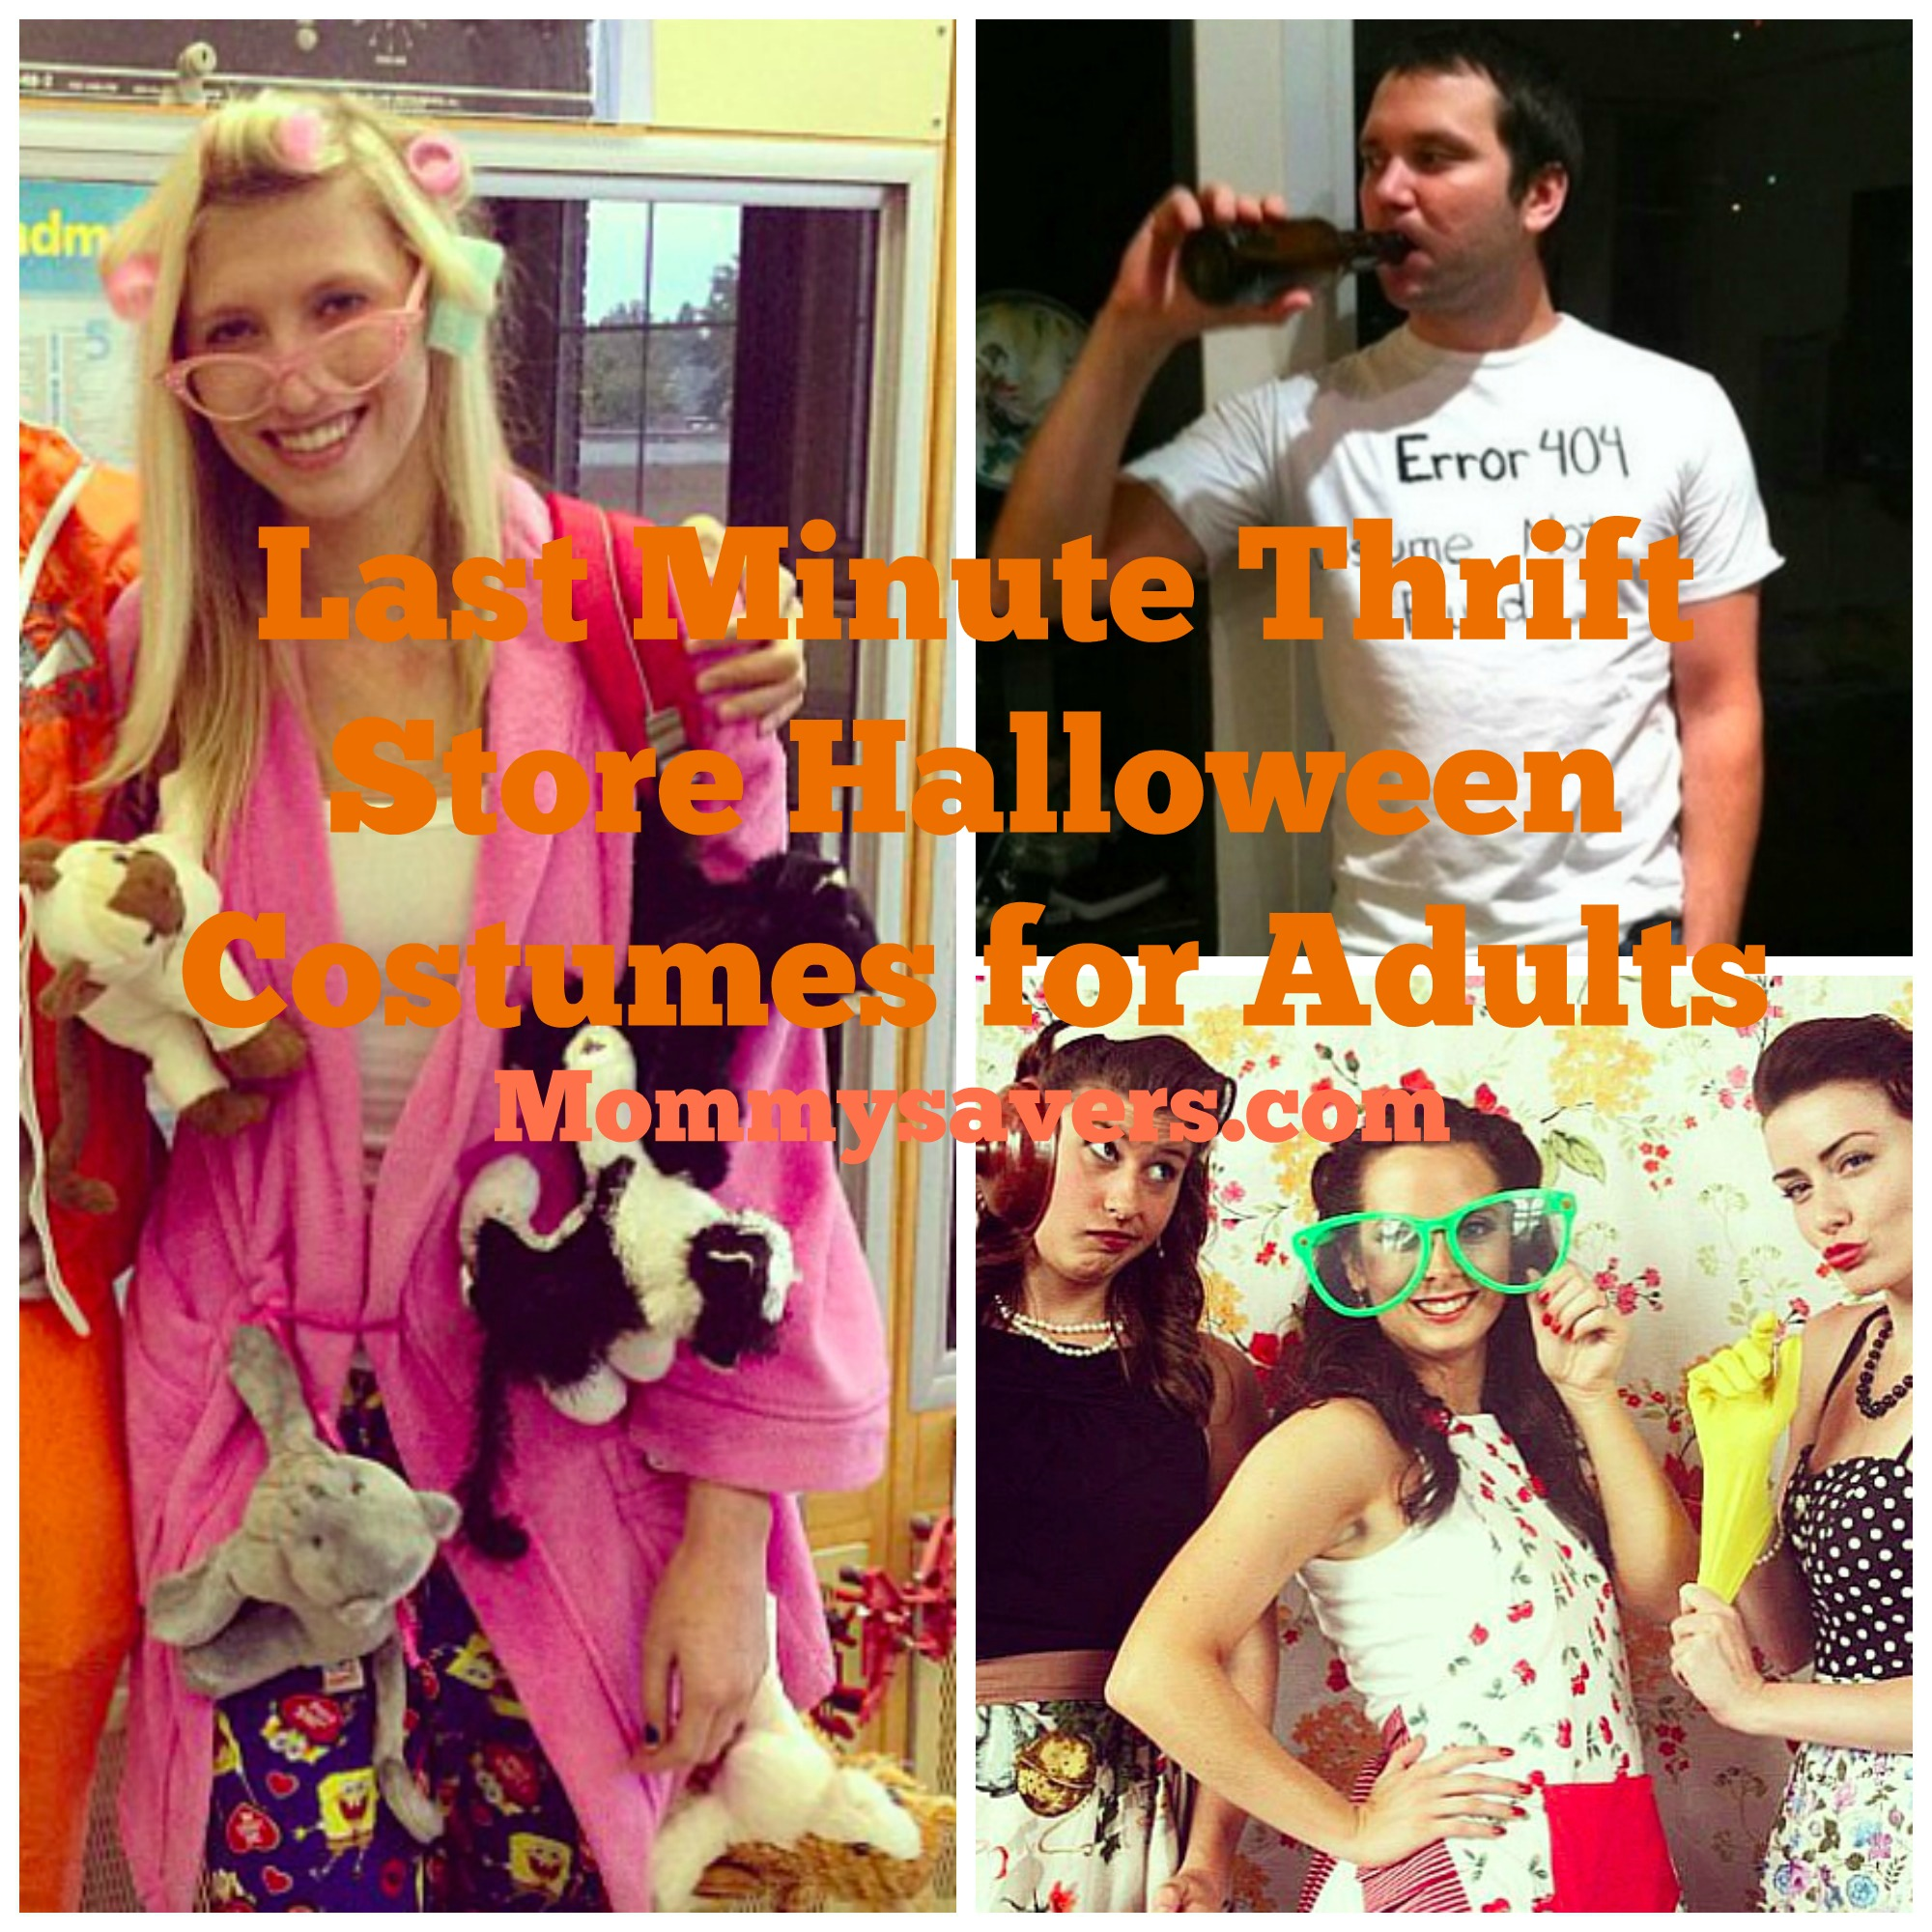 Last Minute Thrift Store Halloween Costume Ideas For Adults